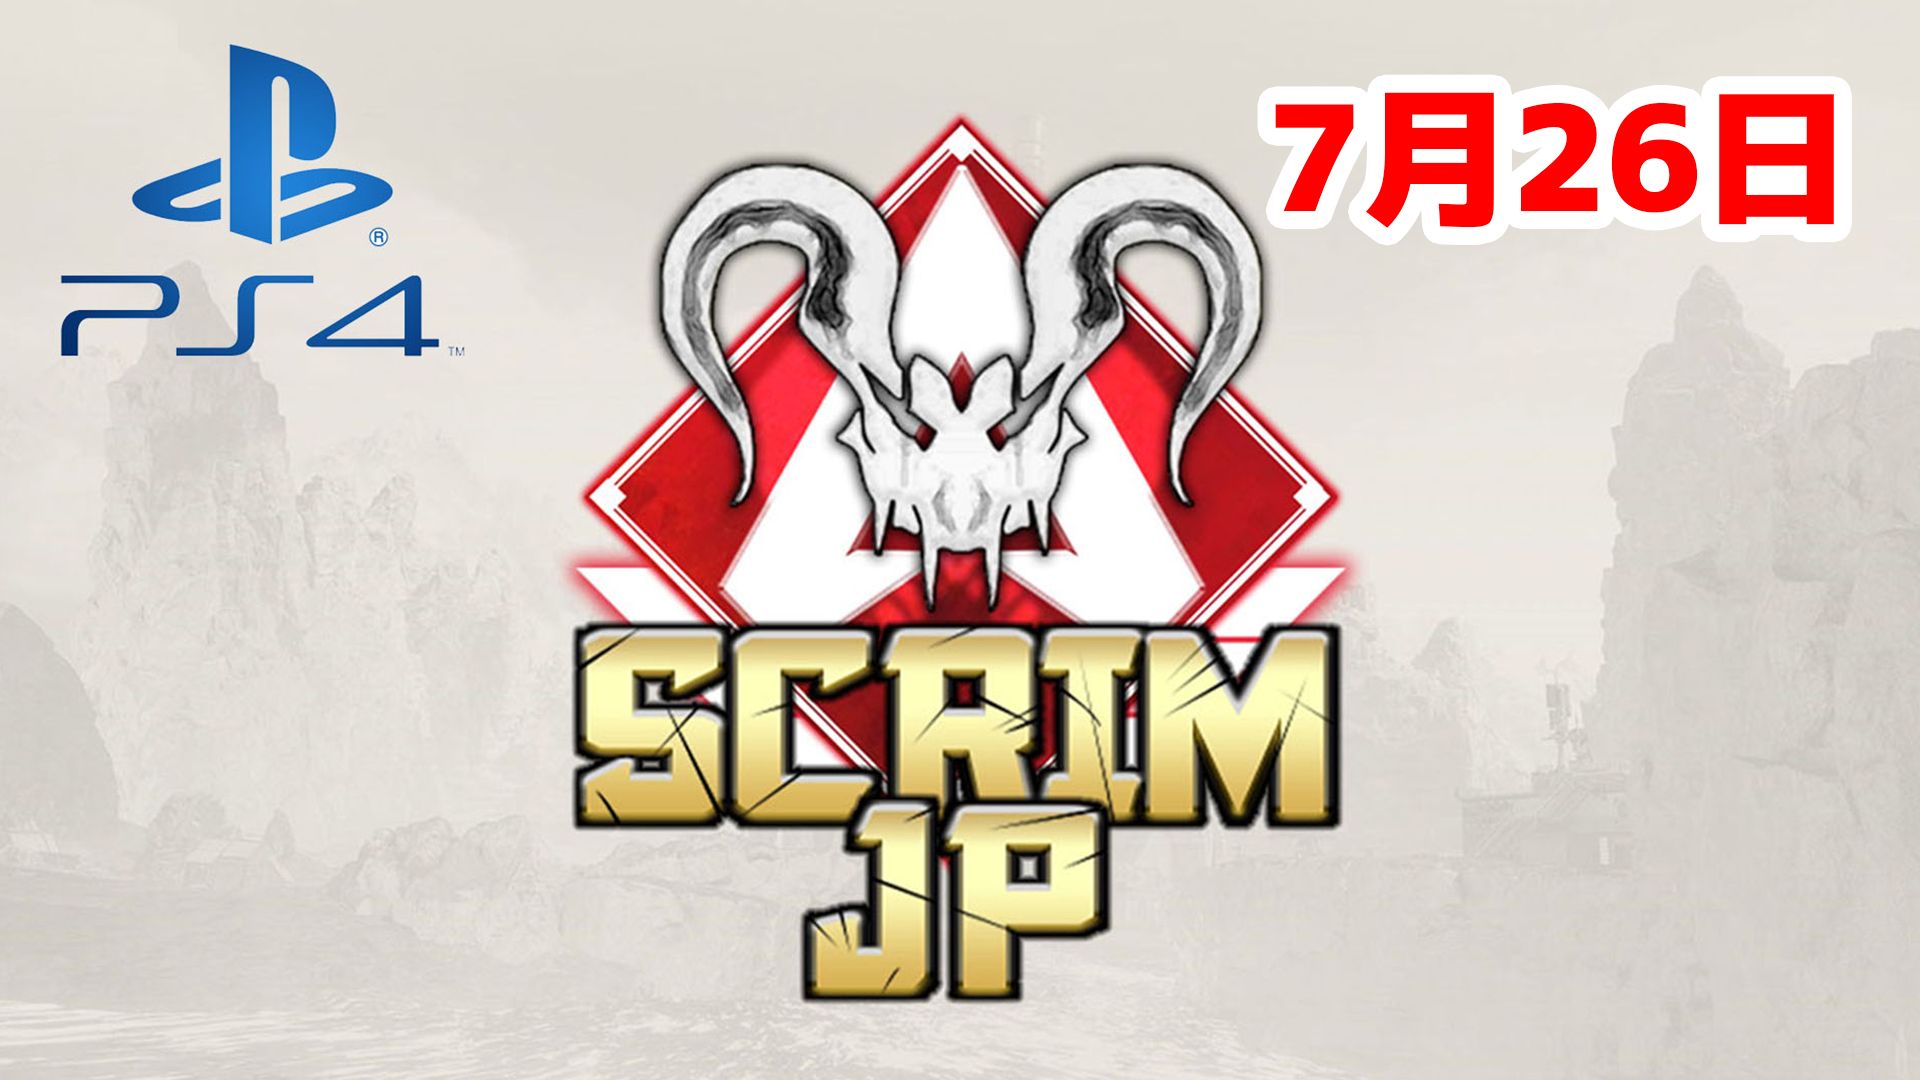 【大会アーカイブ】Apex Legends Scrim JP -Predators PS4-【2020/07/26】